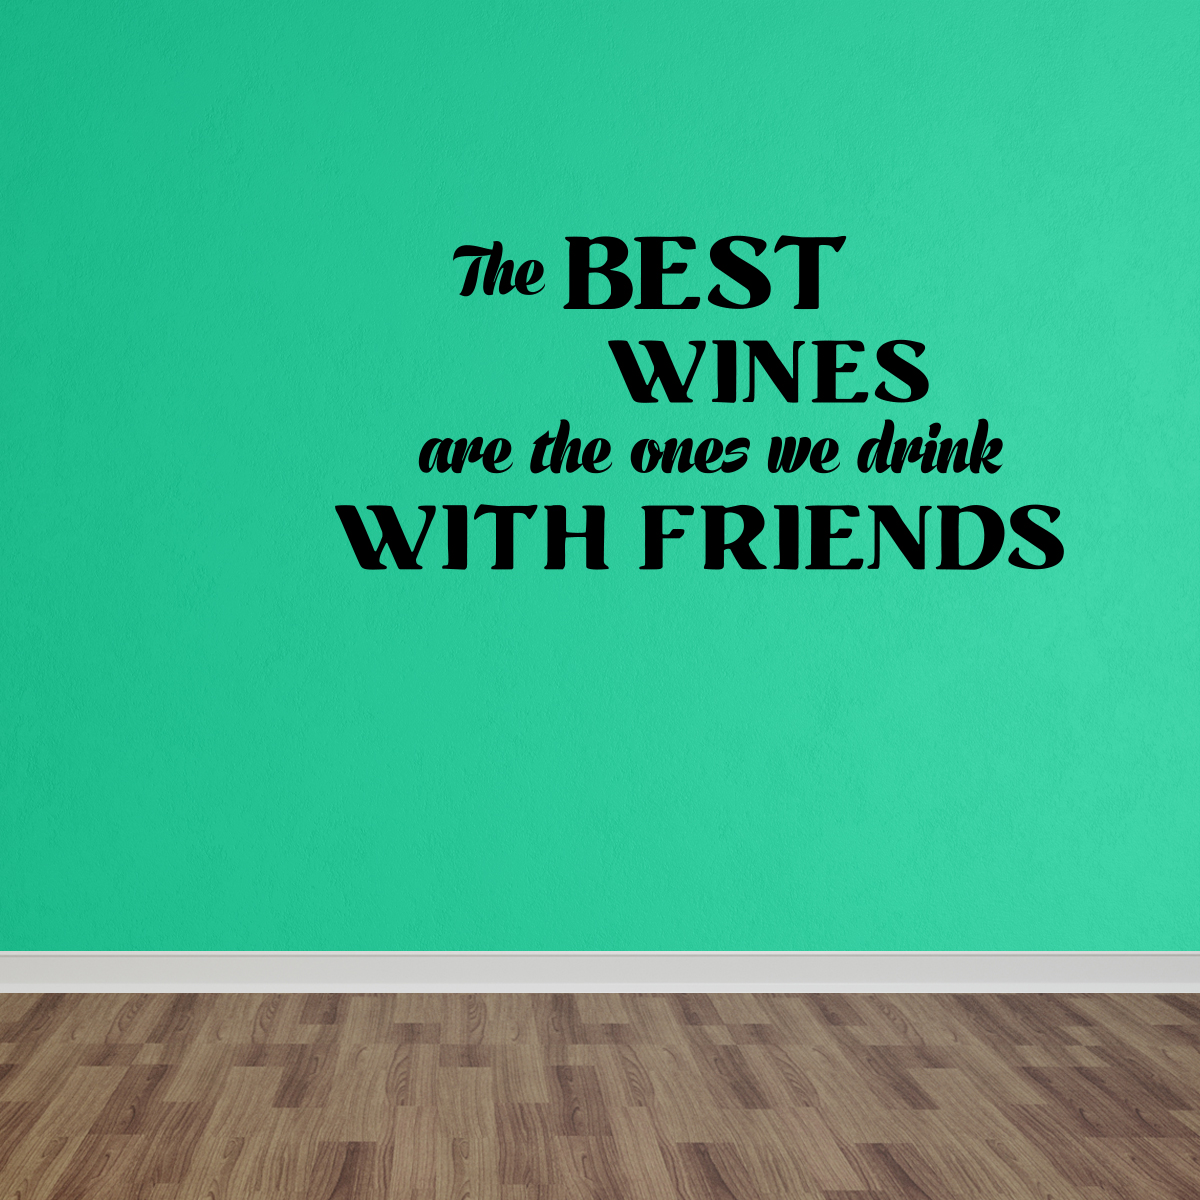 Wall Decal Quote The Best Wines Friends Vinyl Decal Home Art Decor Lettering DP381